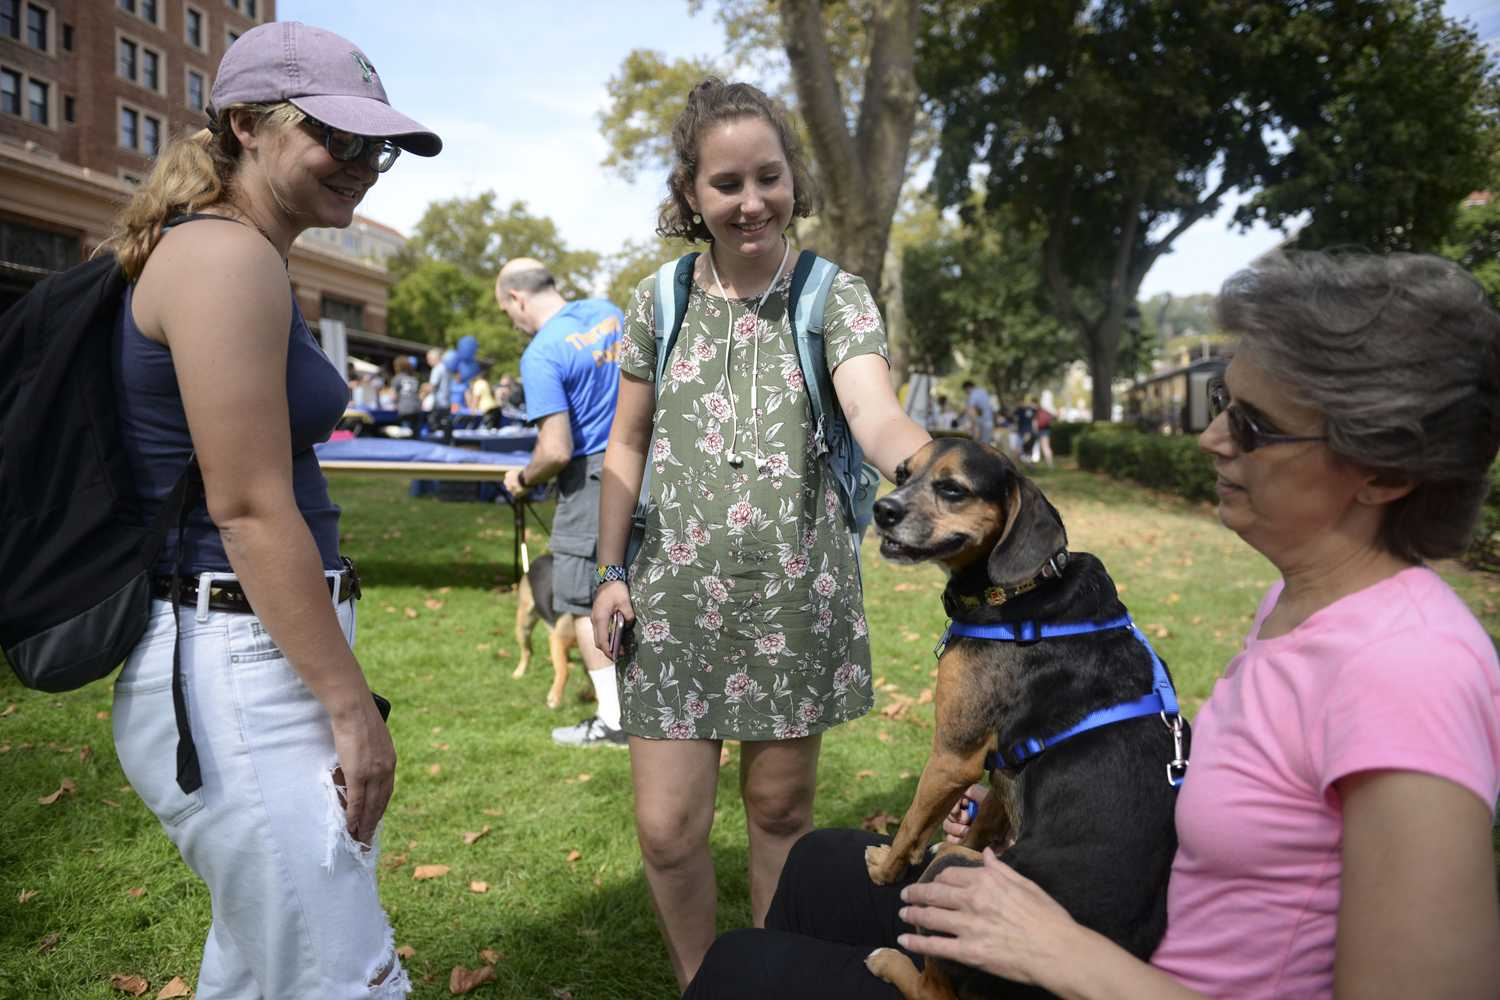 Lisa Farzee attends the Healthy U Fair with her therapy dog, Max. (Photo by Elise Lavallee | Contributing Editor)